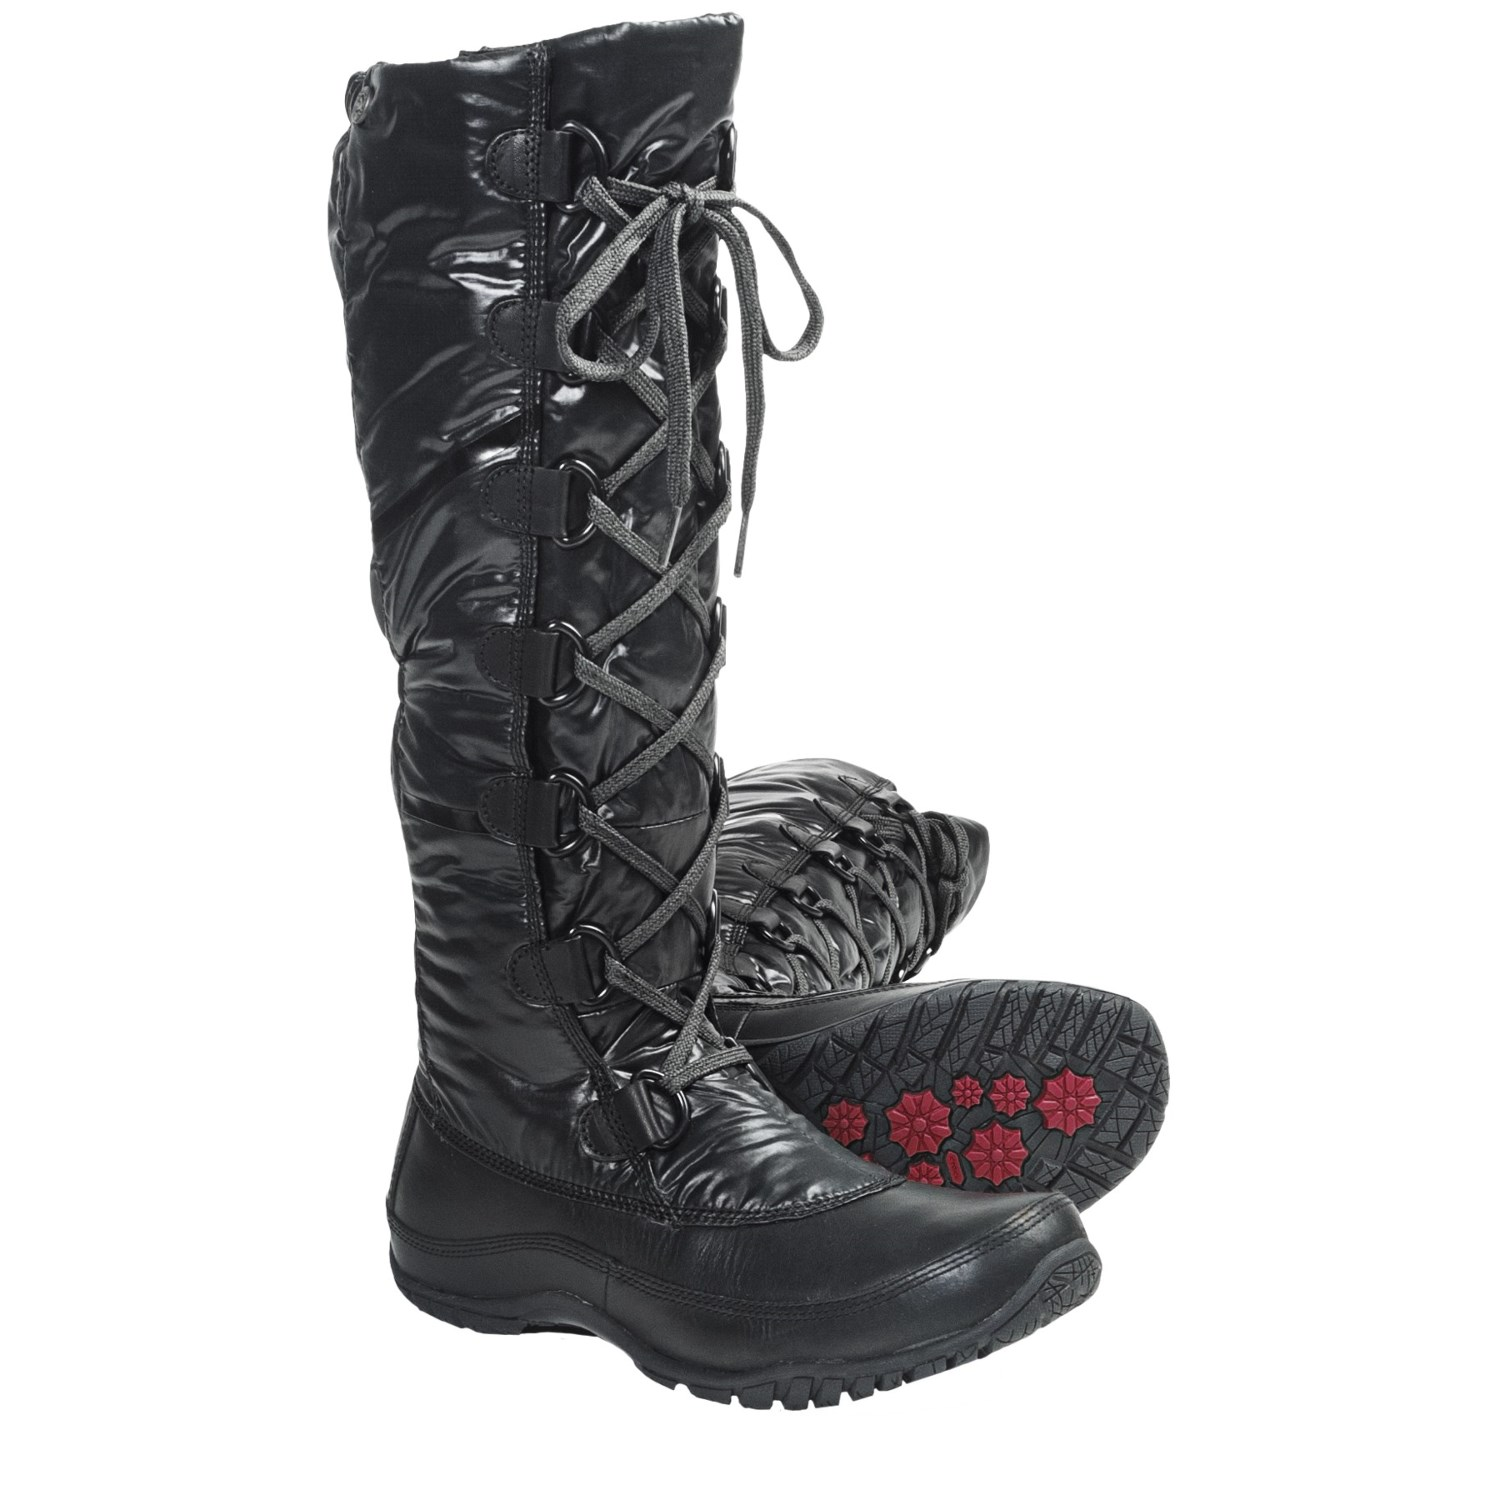 the purna lace winter boots